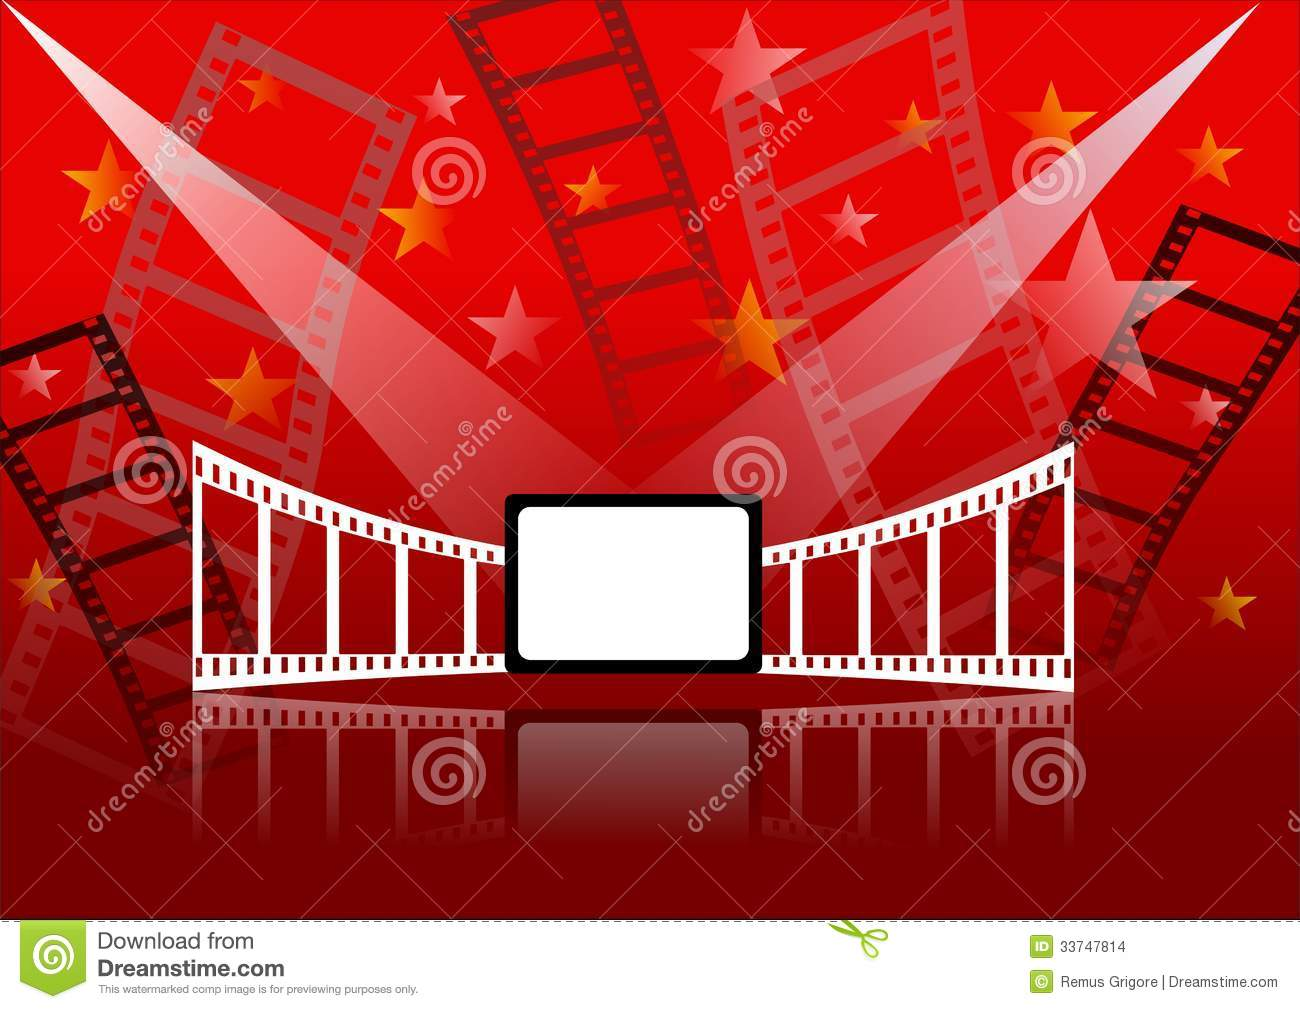 Cinema Background Stock Images - Image: 33747814